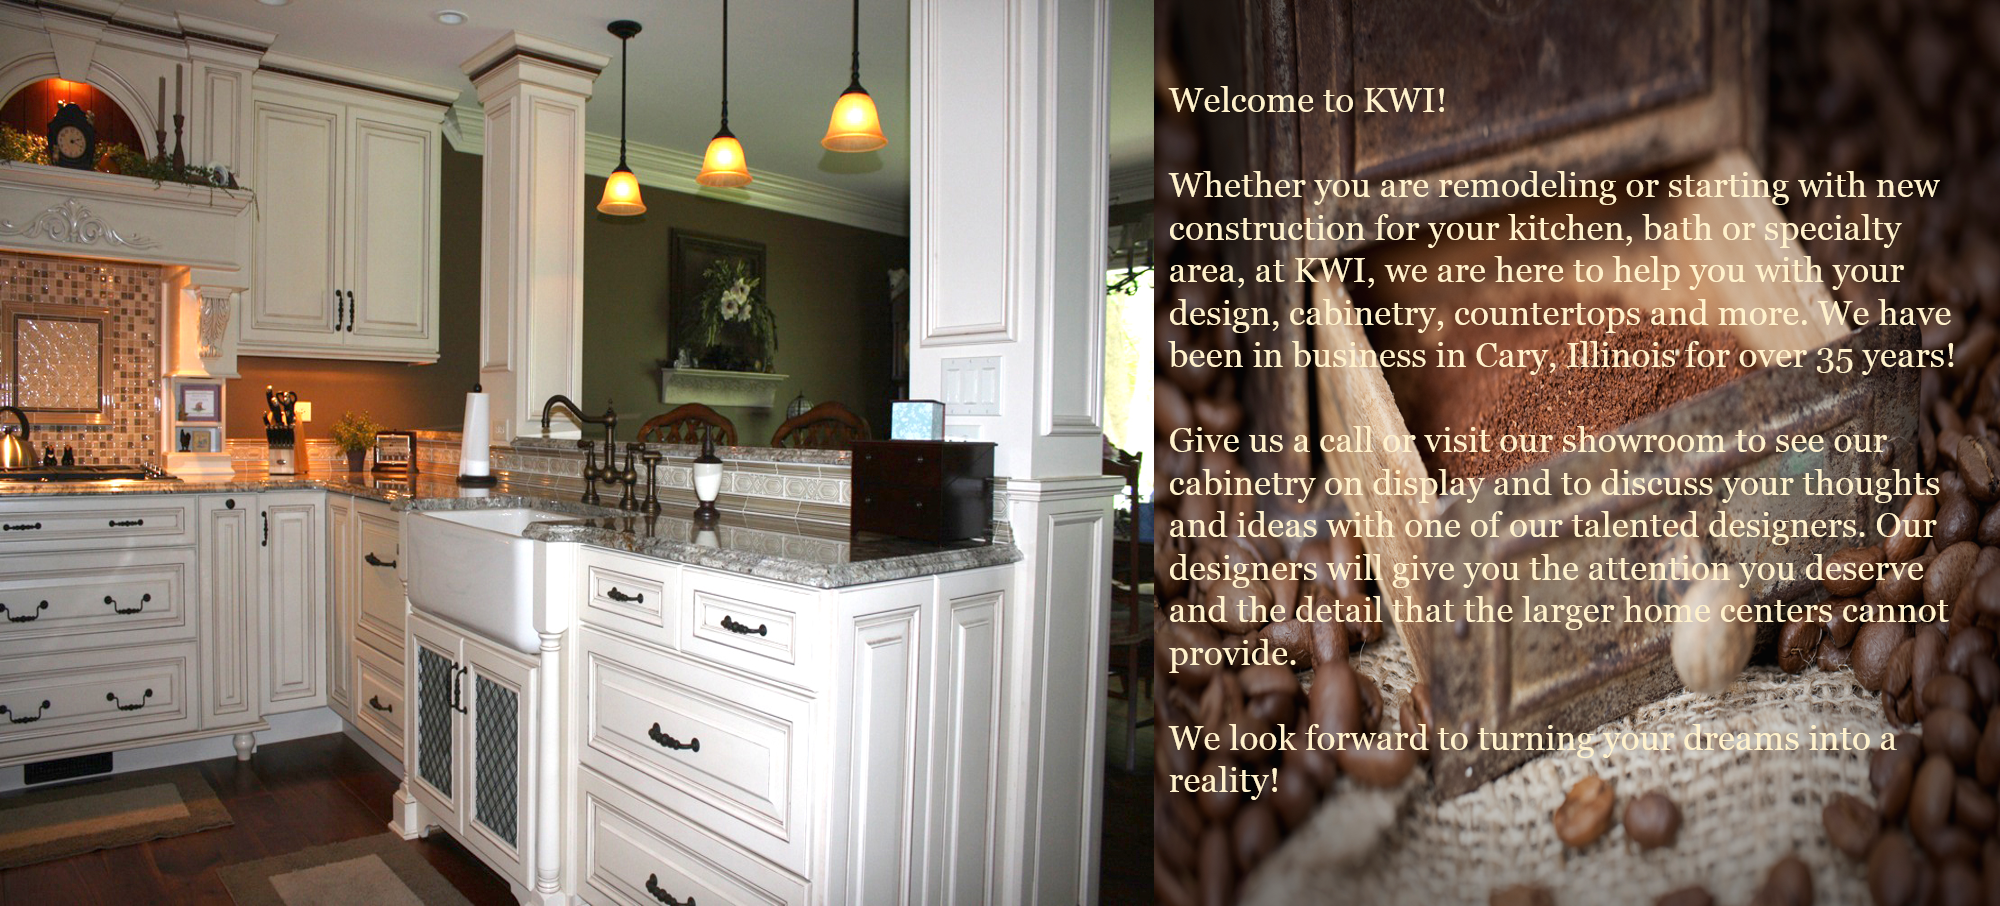 KWI – New Look Kitchen and Bath